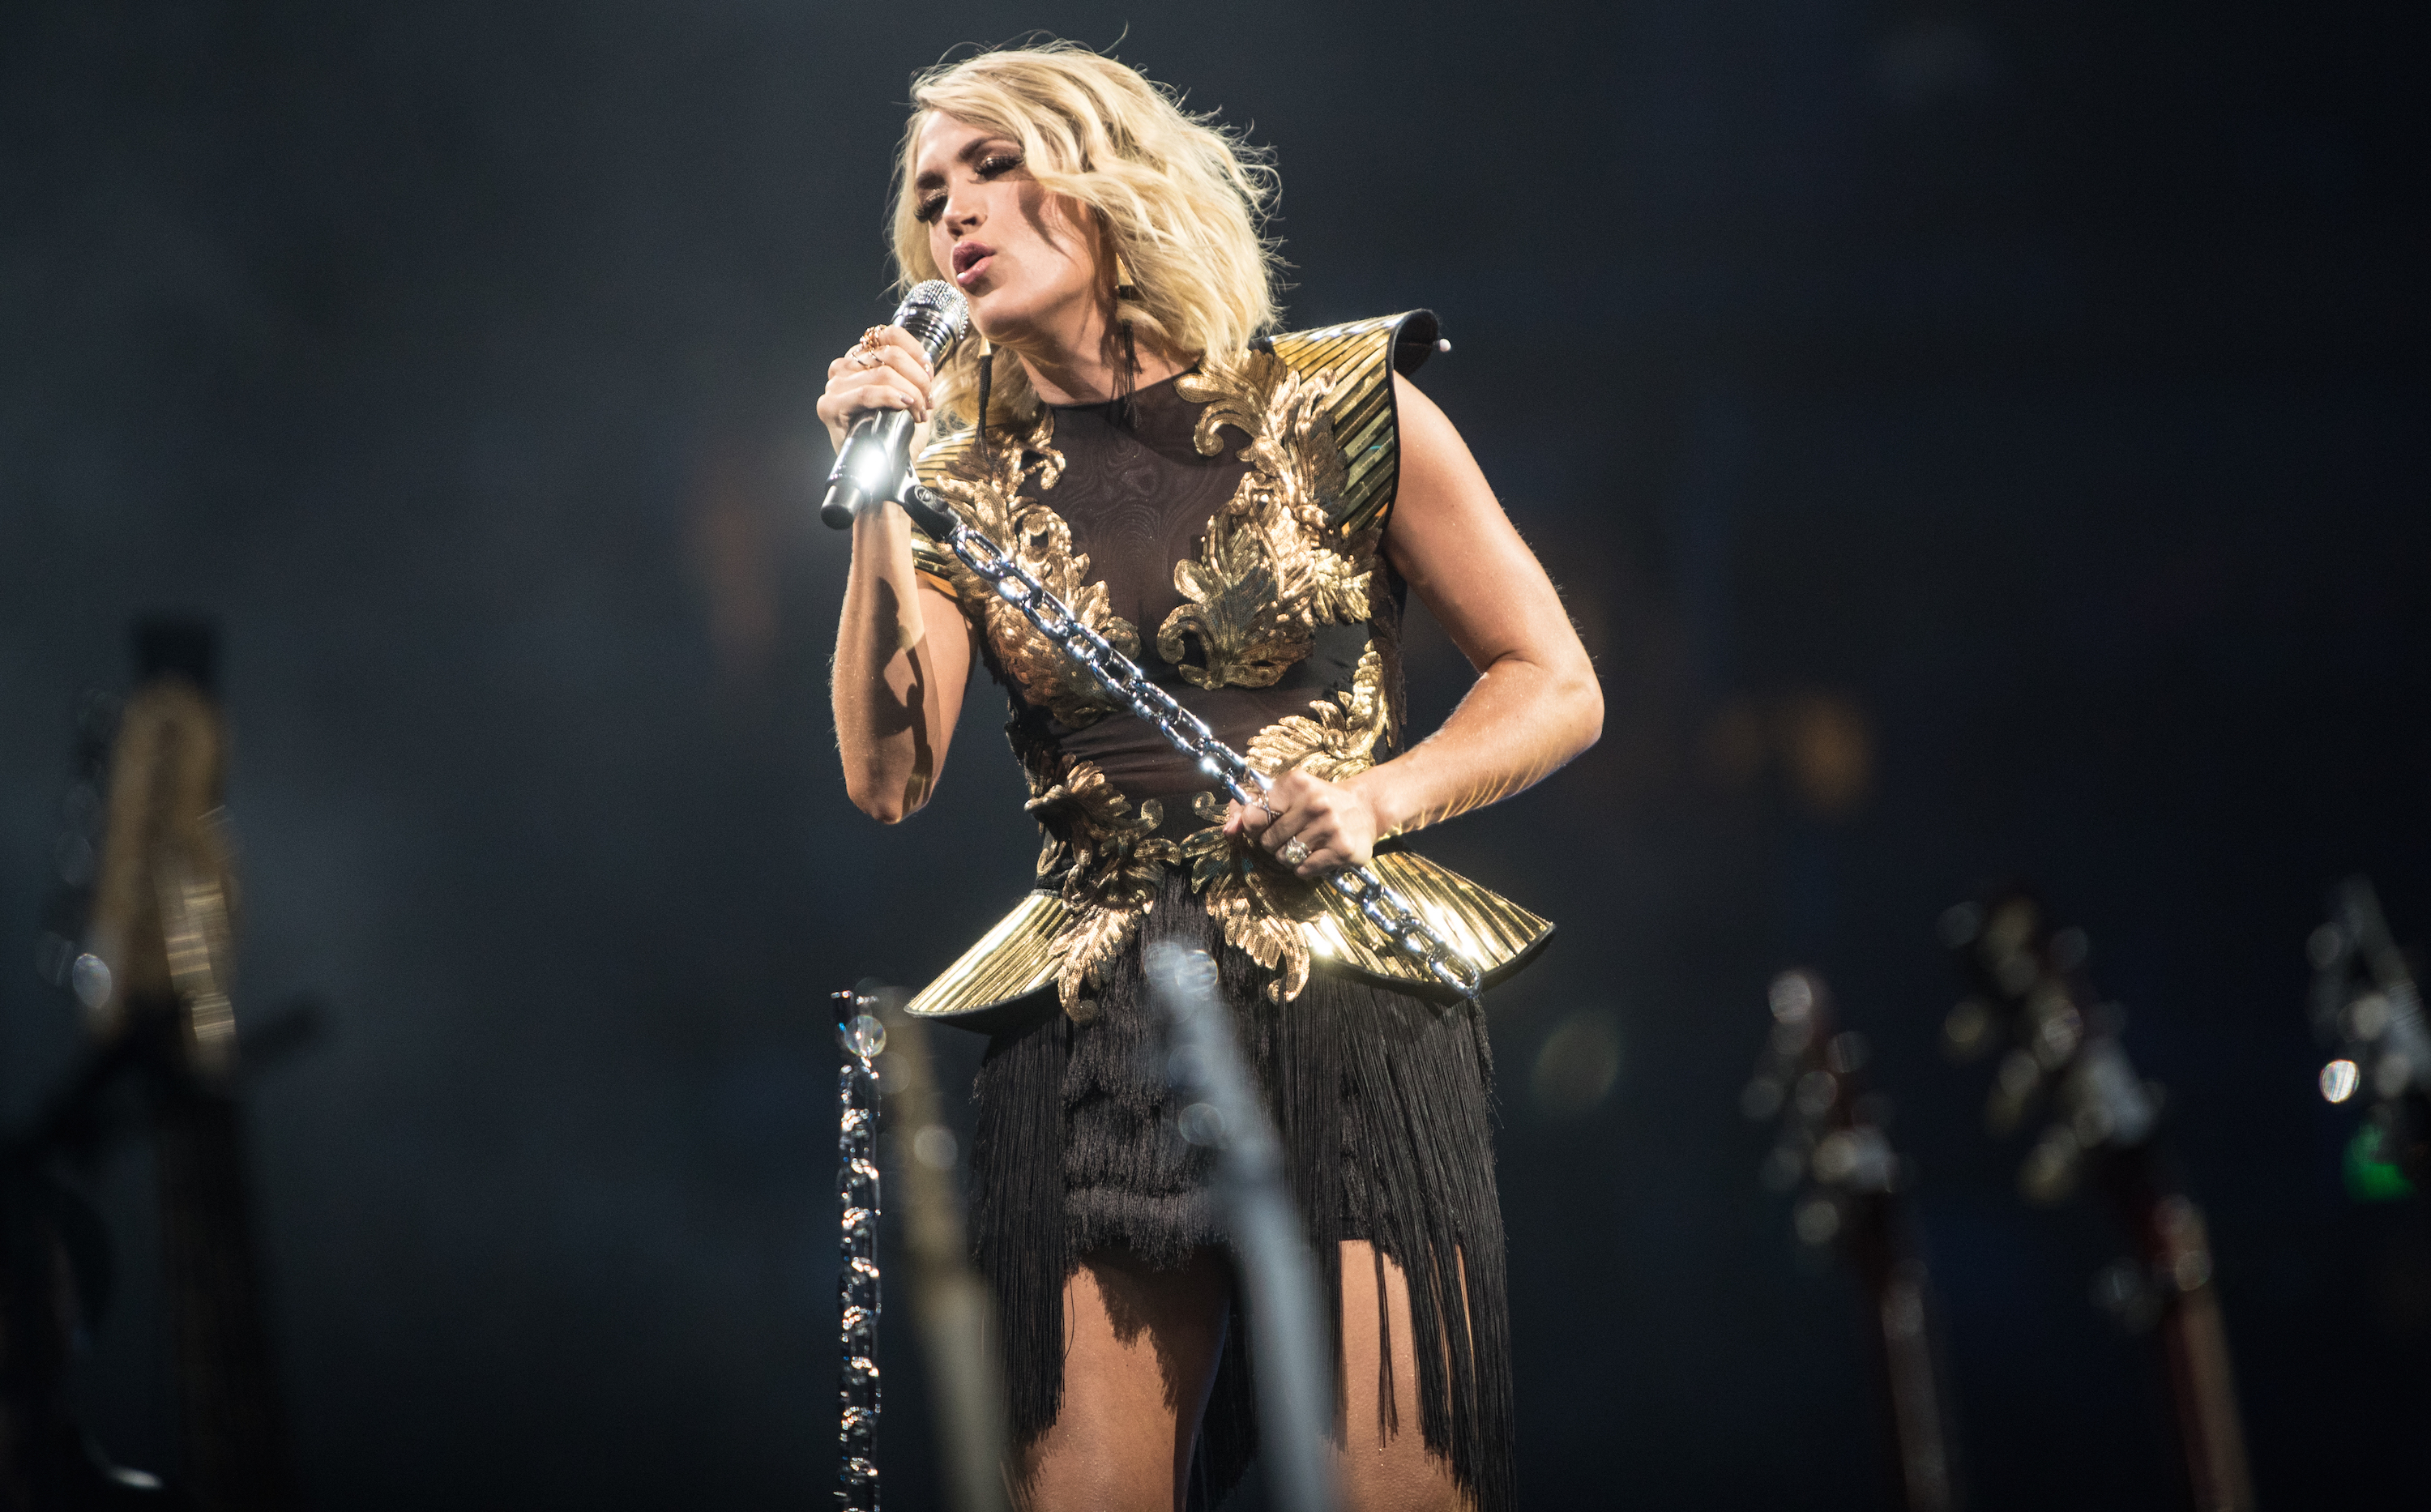 Carrie Underwood Gives Update On Health And Music To Fans